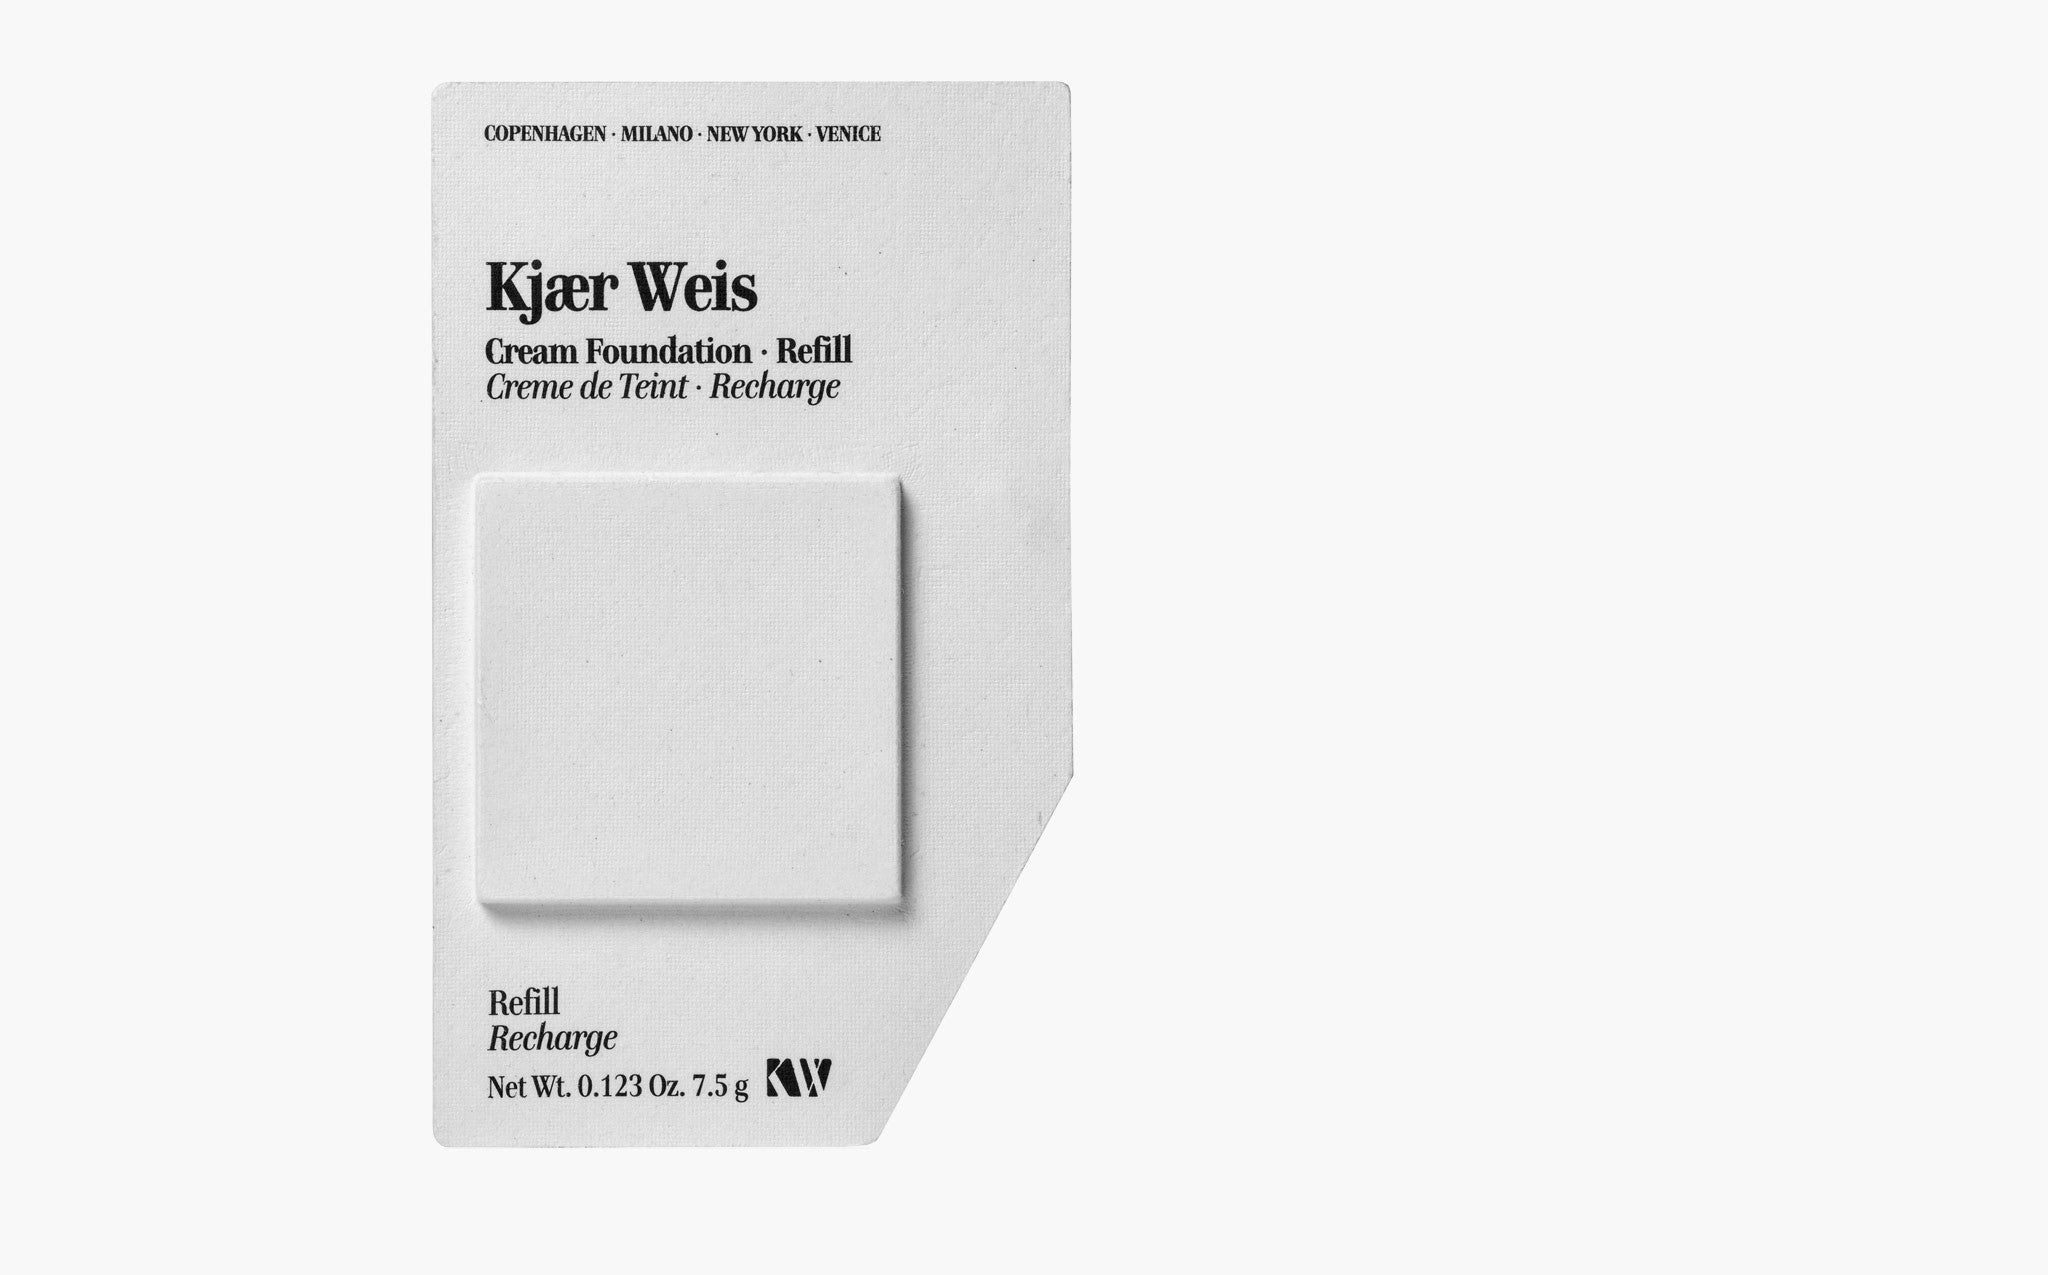 Kjaer Weis Delicate Foundation